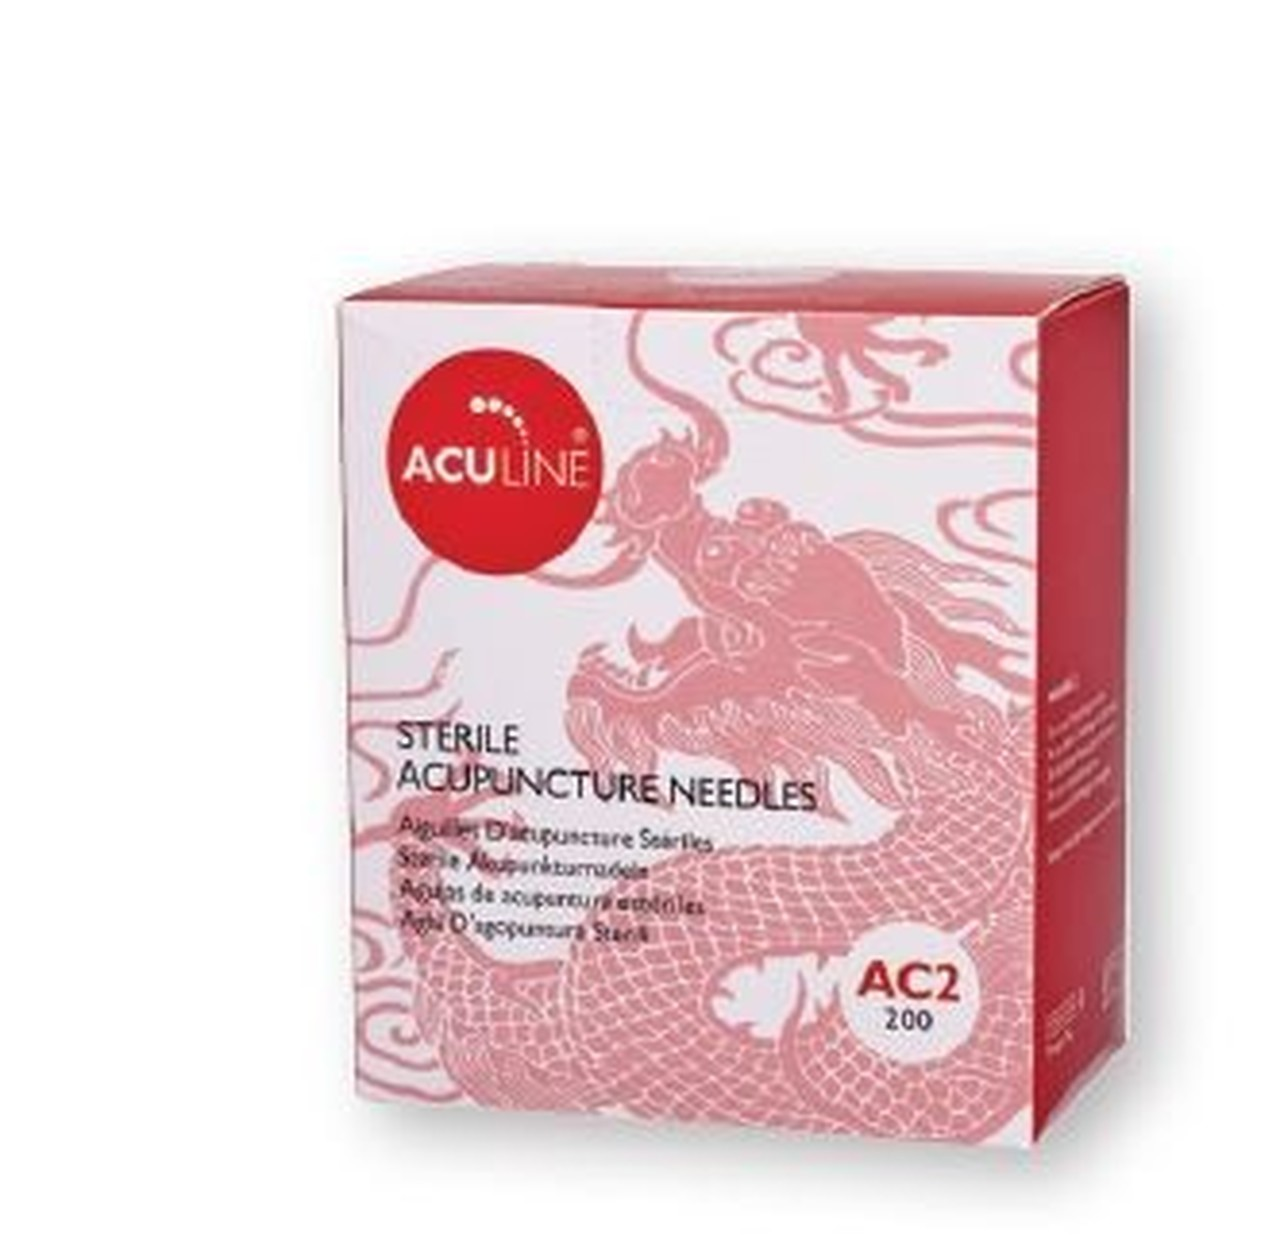 .20x40mm - Aculine Copper Handle Acupuncture Needles